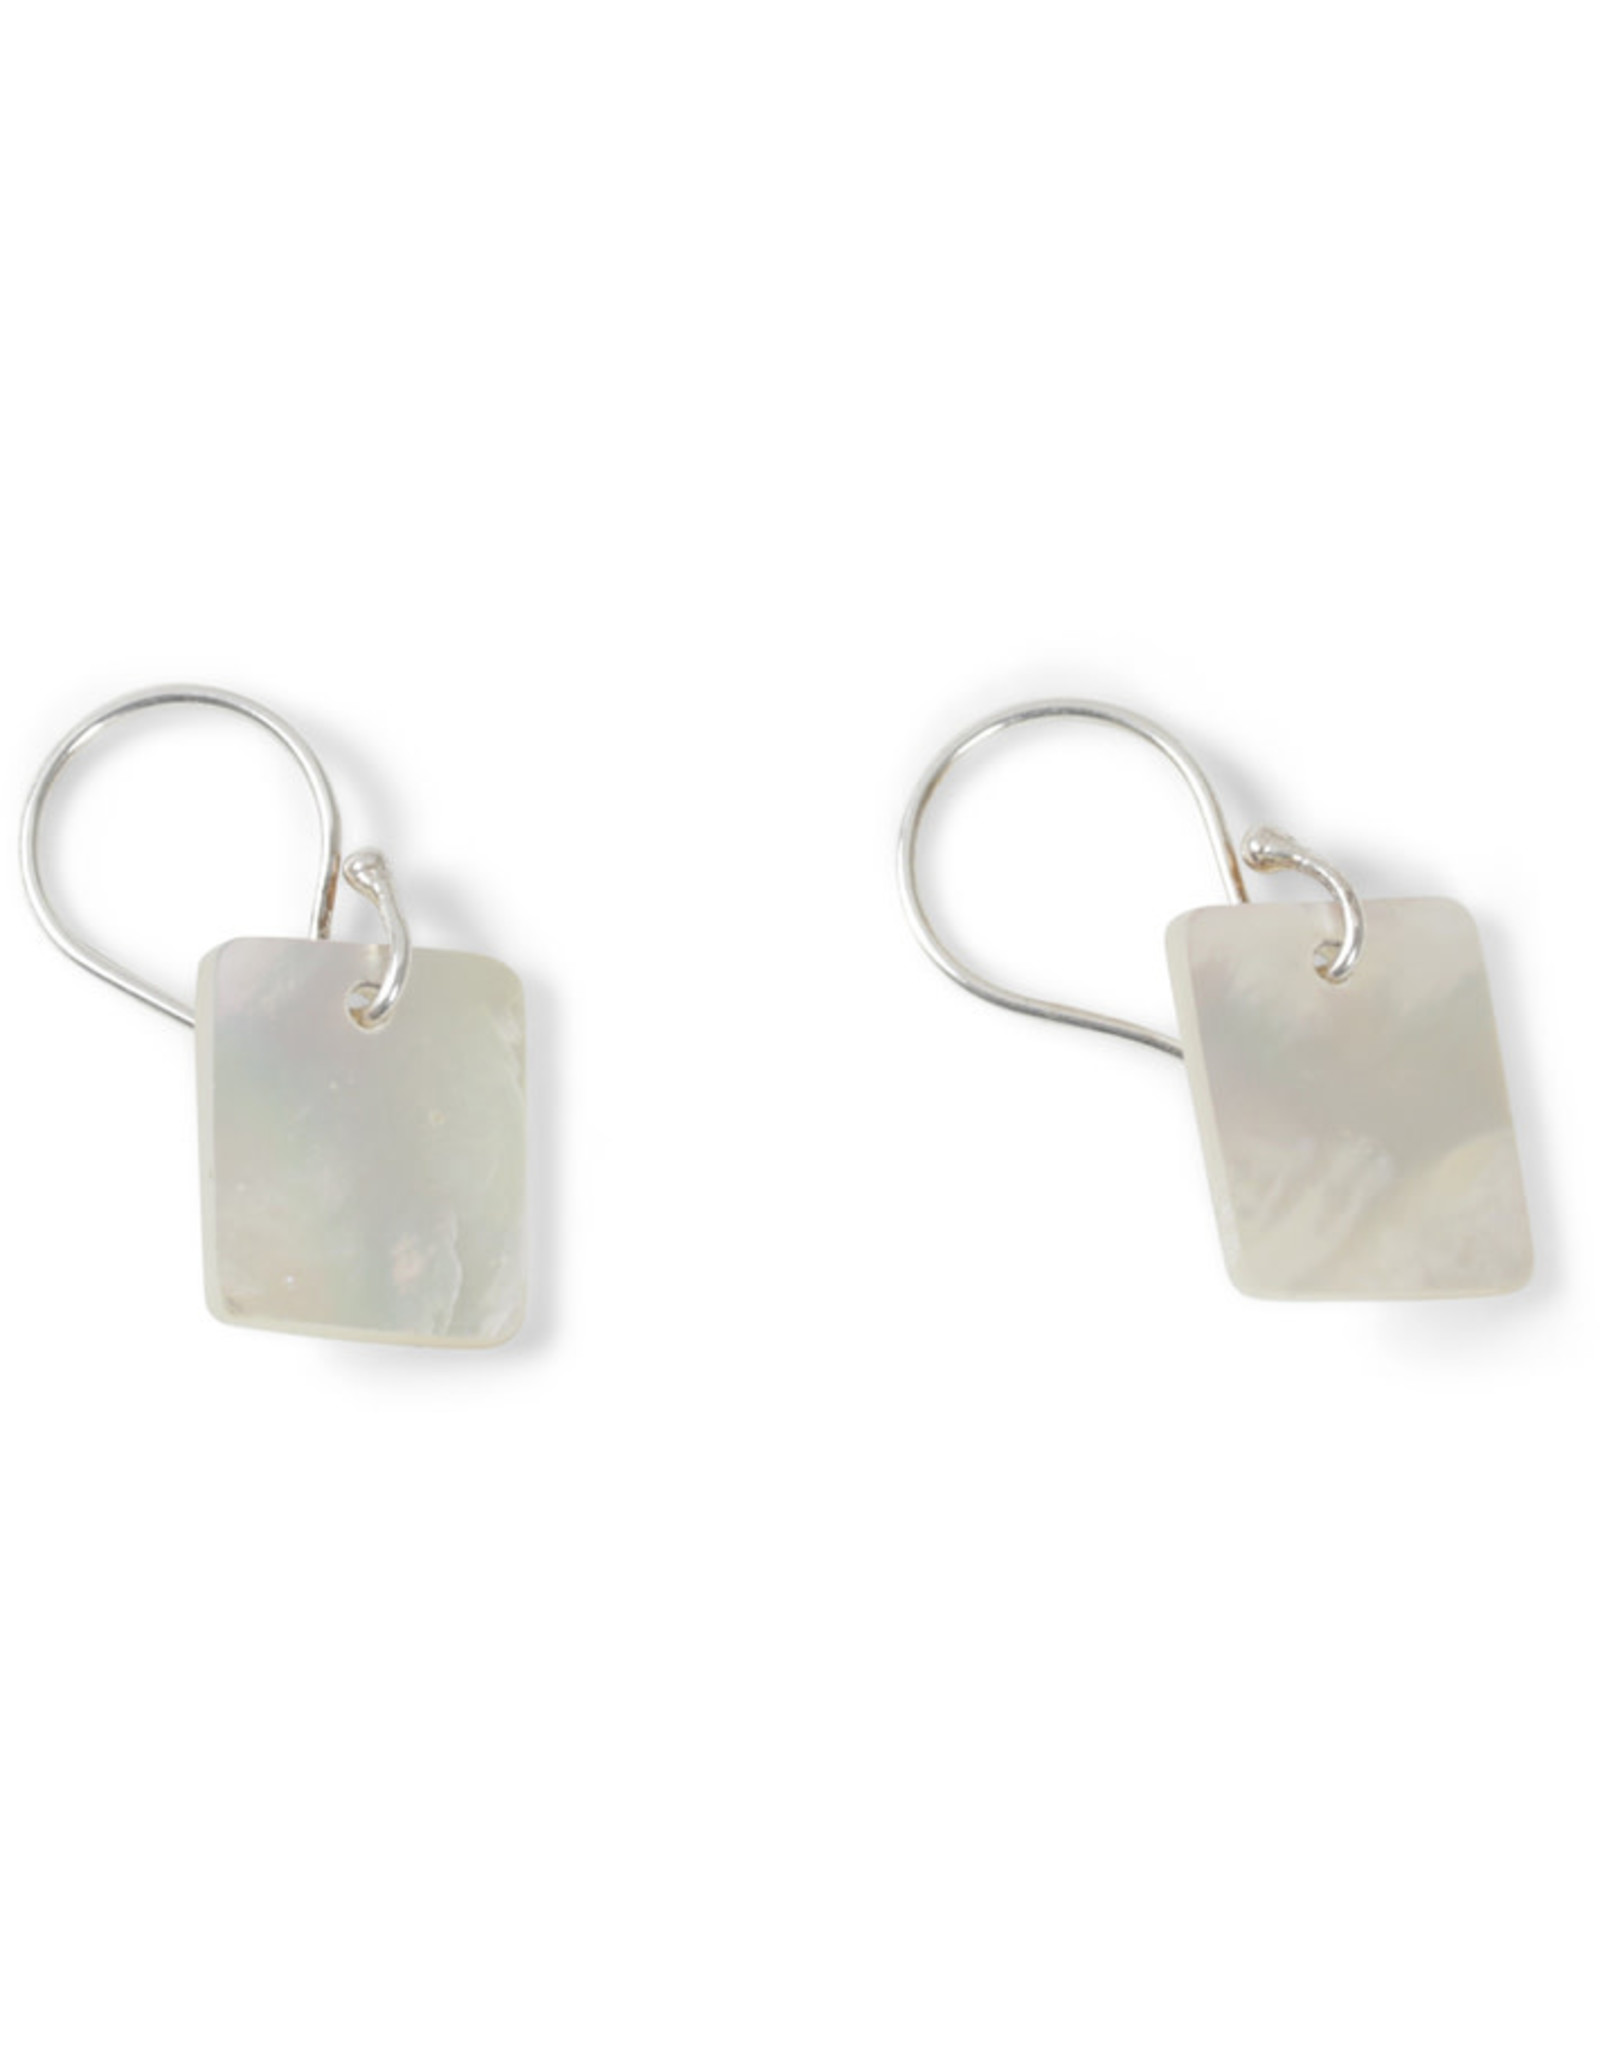 Ten Thousand Villages Mother of Pearl Rectangle Earrings w/ Sterling Silver, Indonesia